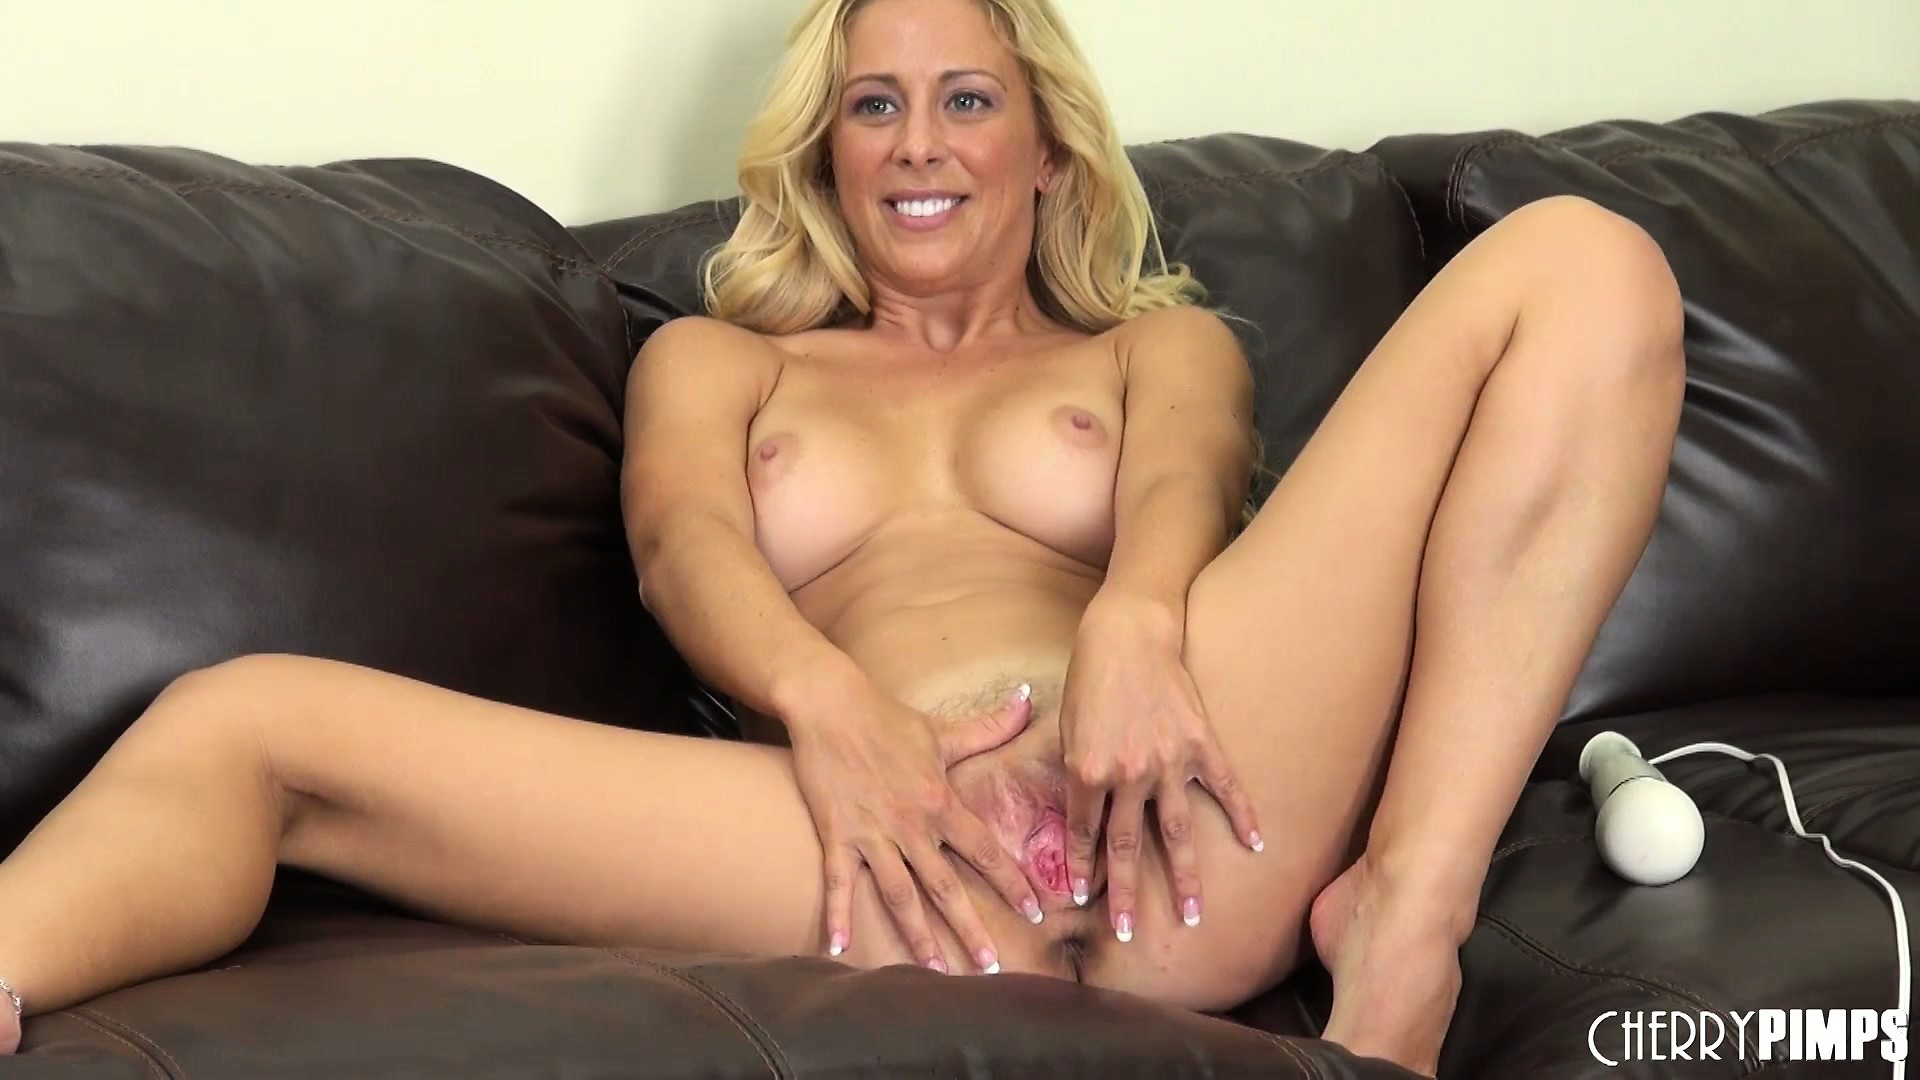 Porno Video of Cherie Deville Vibrates Her Clit And Spreads Her Lips And Fingers